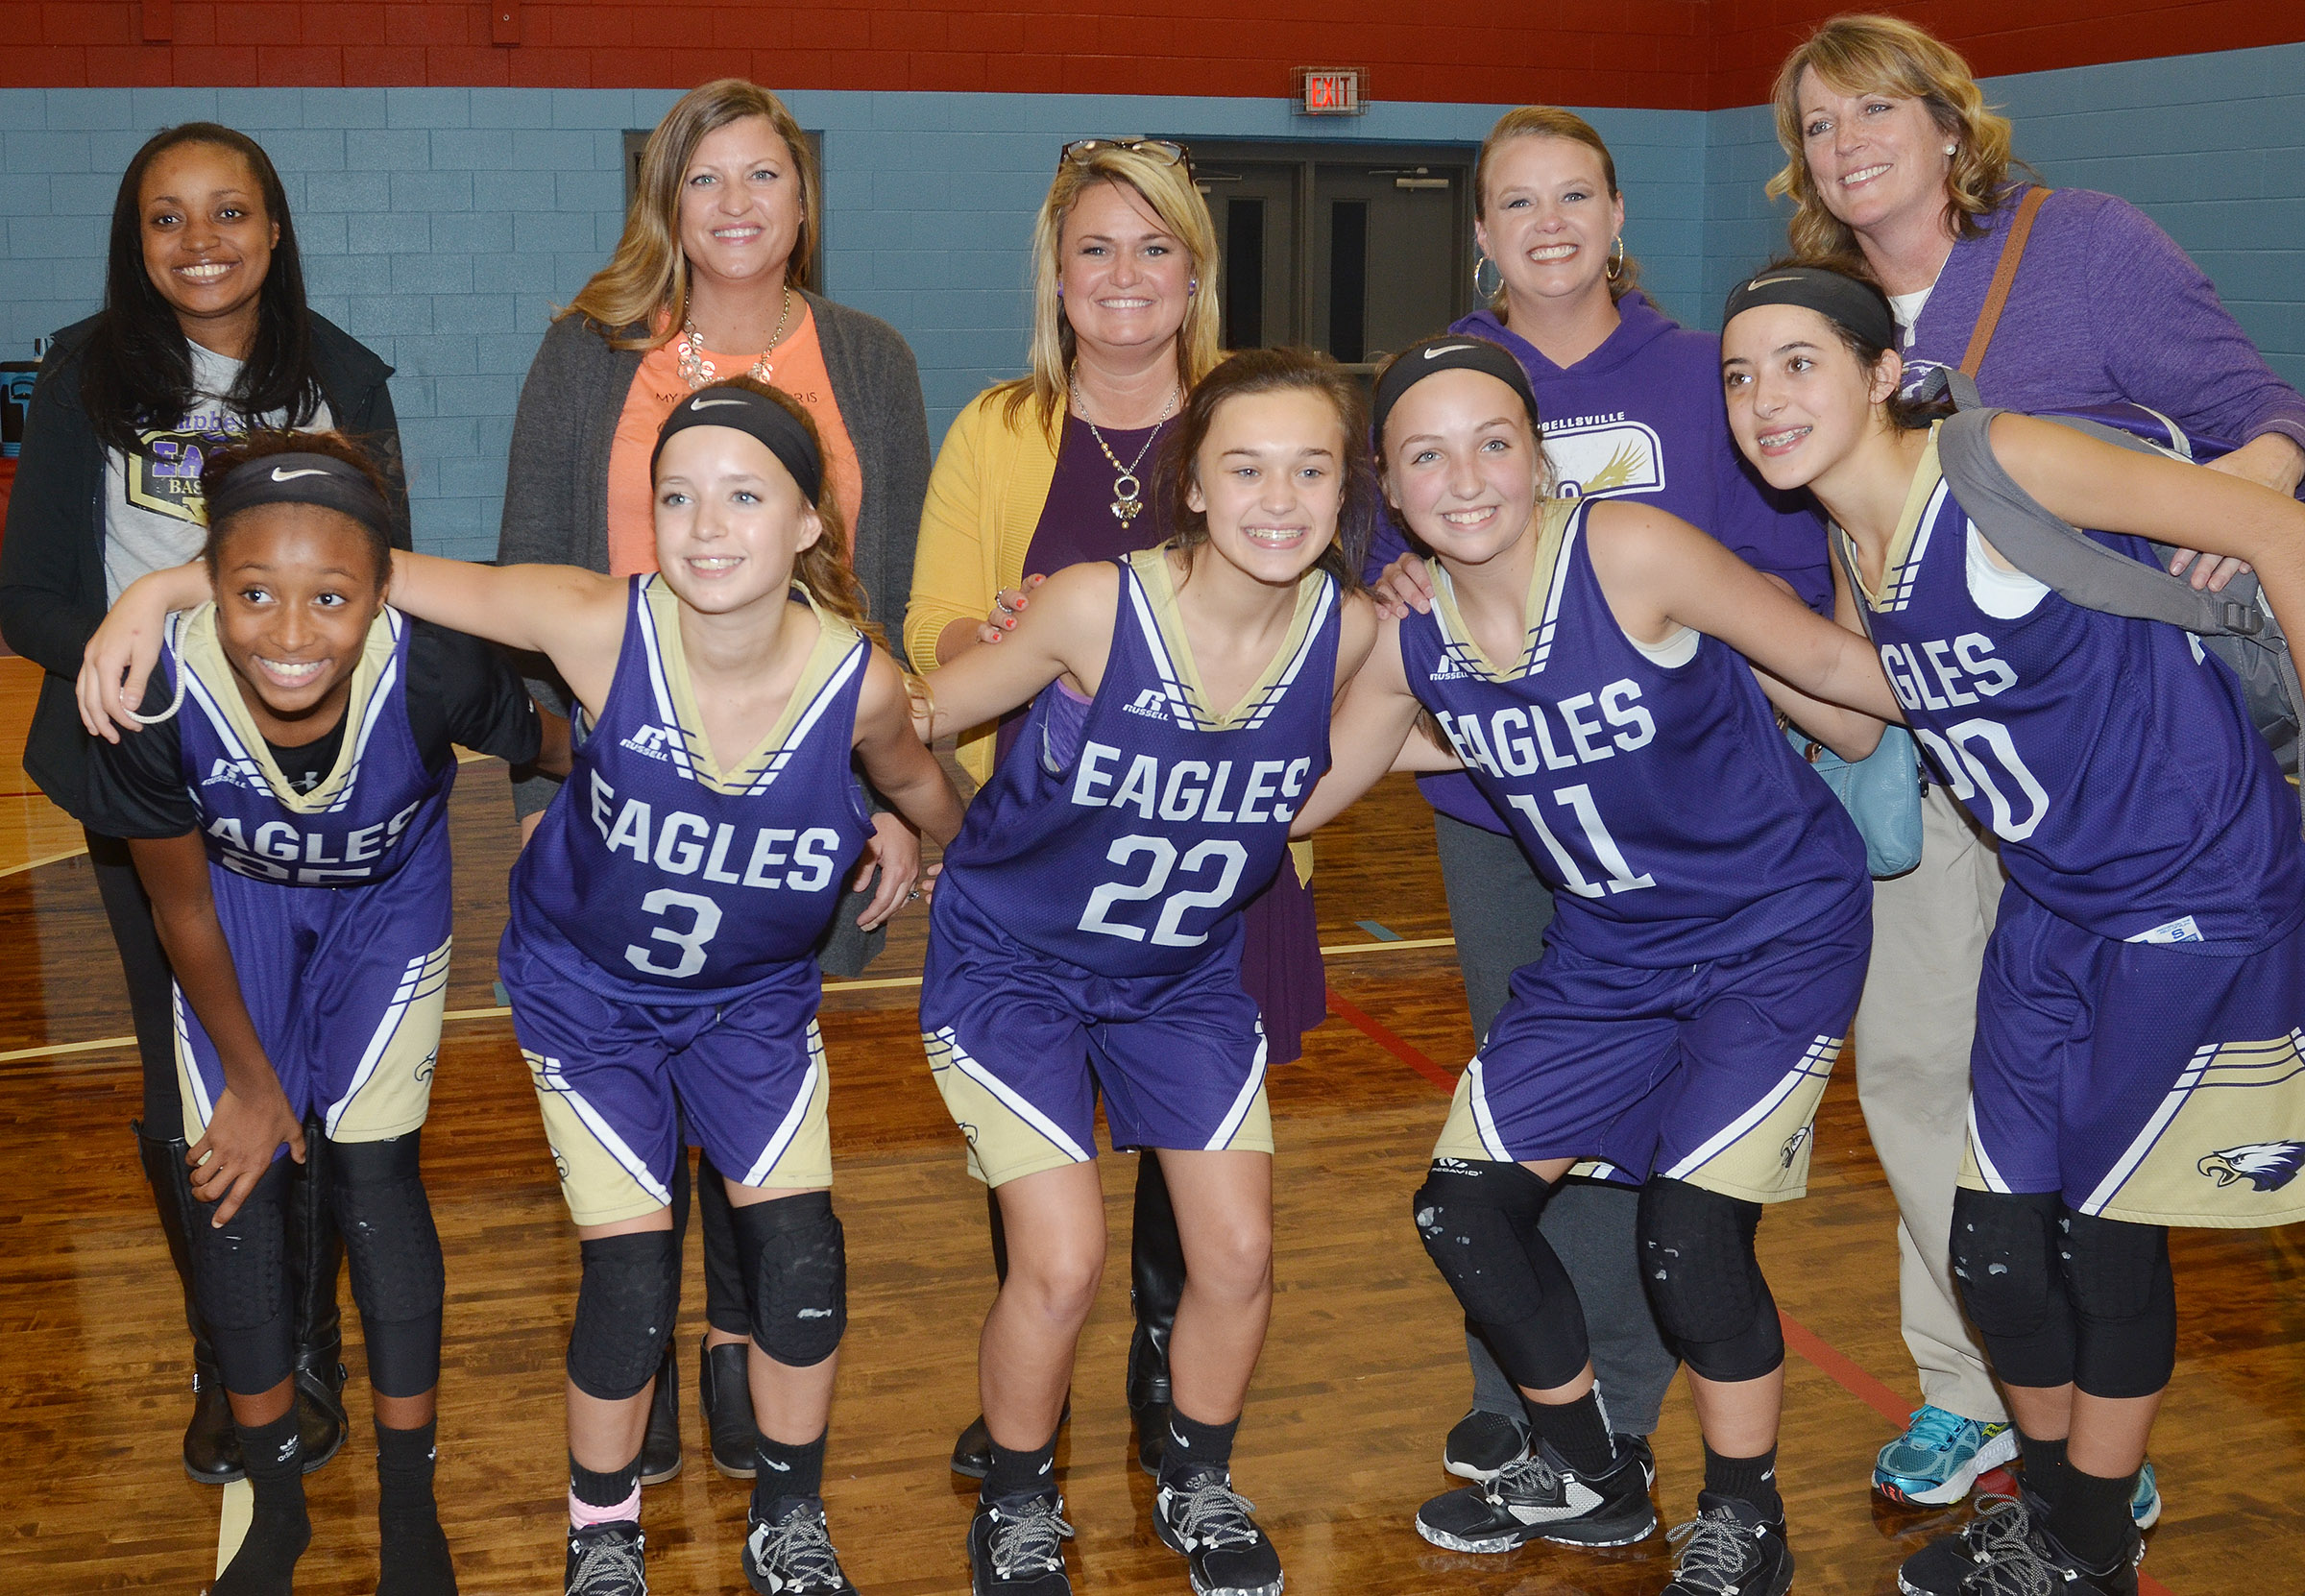 Campbellsville Middle School girls' eighth-grade basketball team recently won its first Central Kentucky Middle School Athletic Conference tournament championship title in 20 years. Above, eighth-grade players pose with their mothers. From left are Bri Gowdy and her mother Tonya, Rylee Petett and her mother Ashley, Tayler Thompson and her mother Kim, Lainey Watson and her mother Jessica Watson and Kaylyn Smith and her mother Andrea.